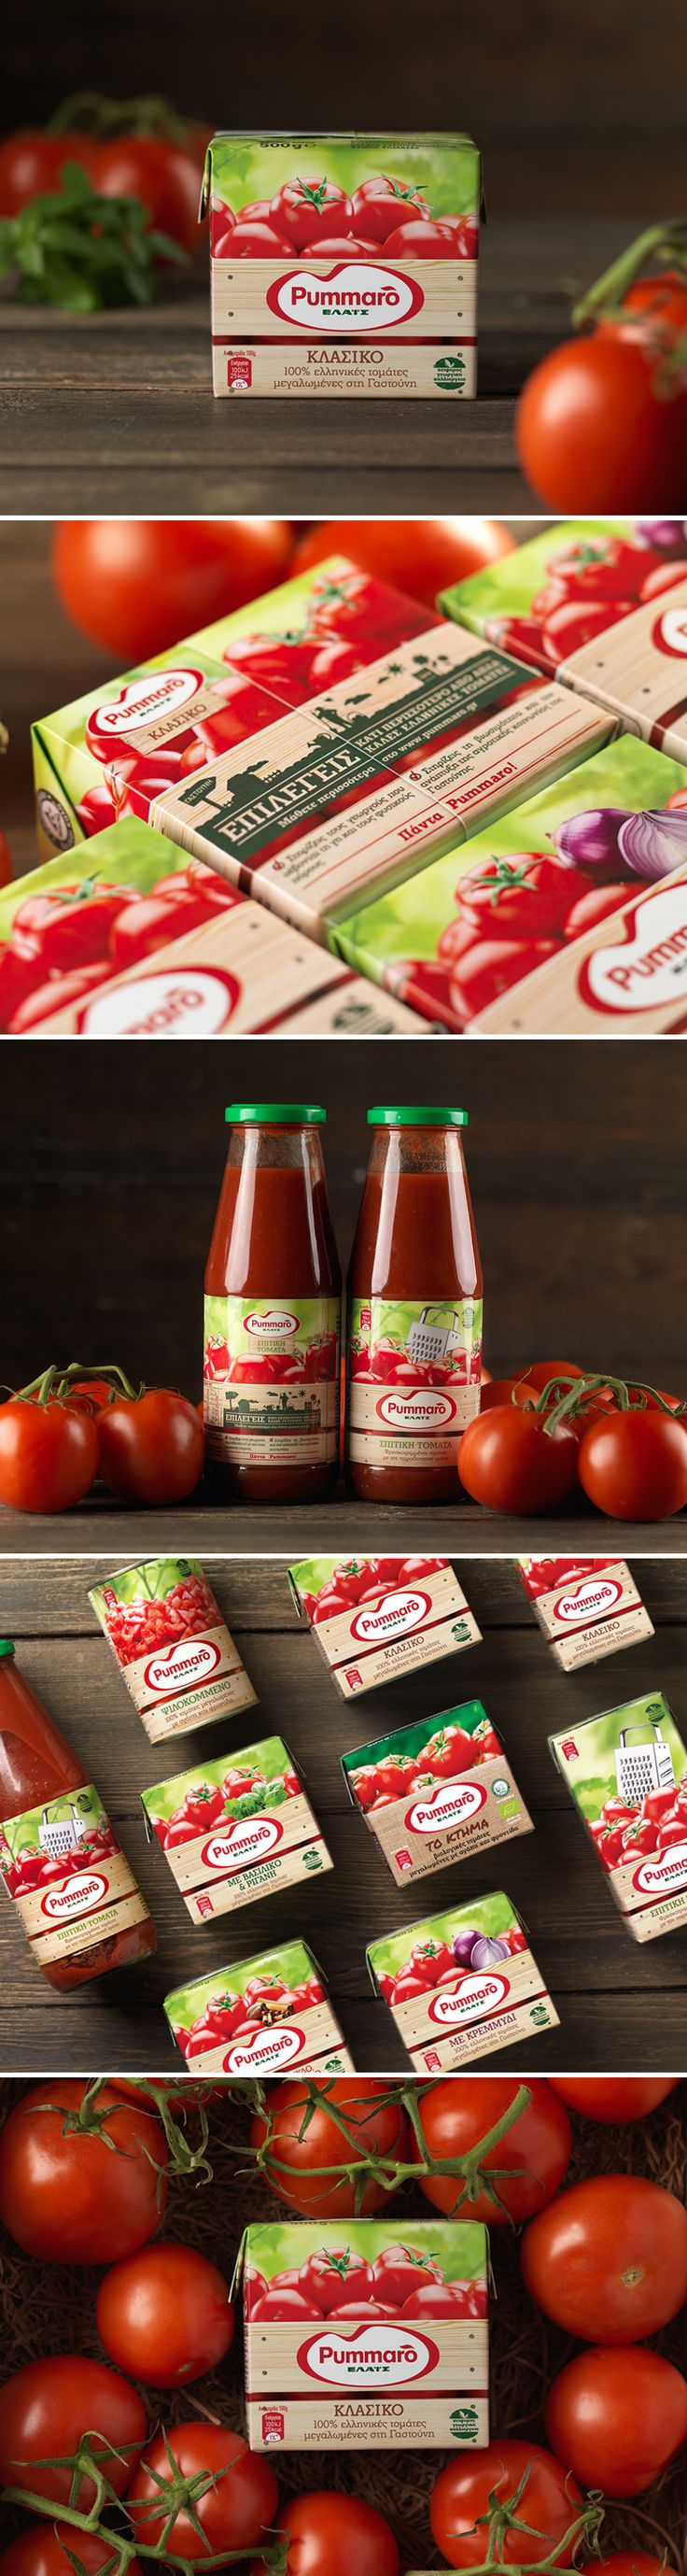 New visual identity & packaging design for Pummaro tomato sauces by 2yolk